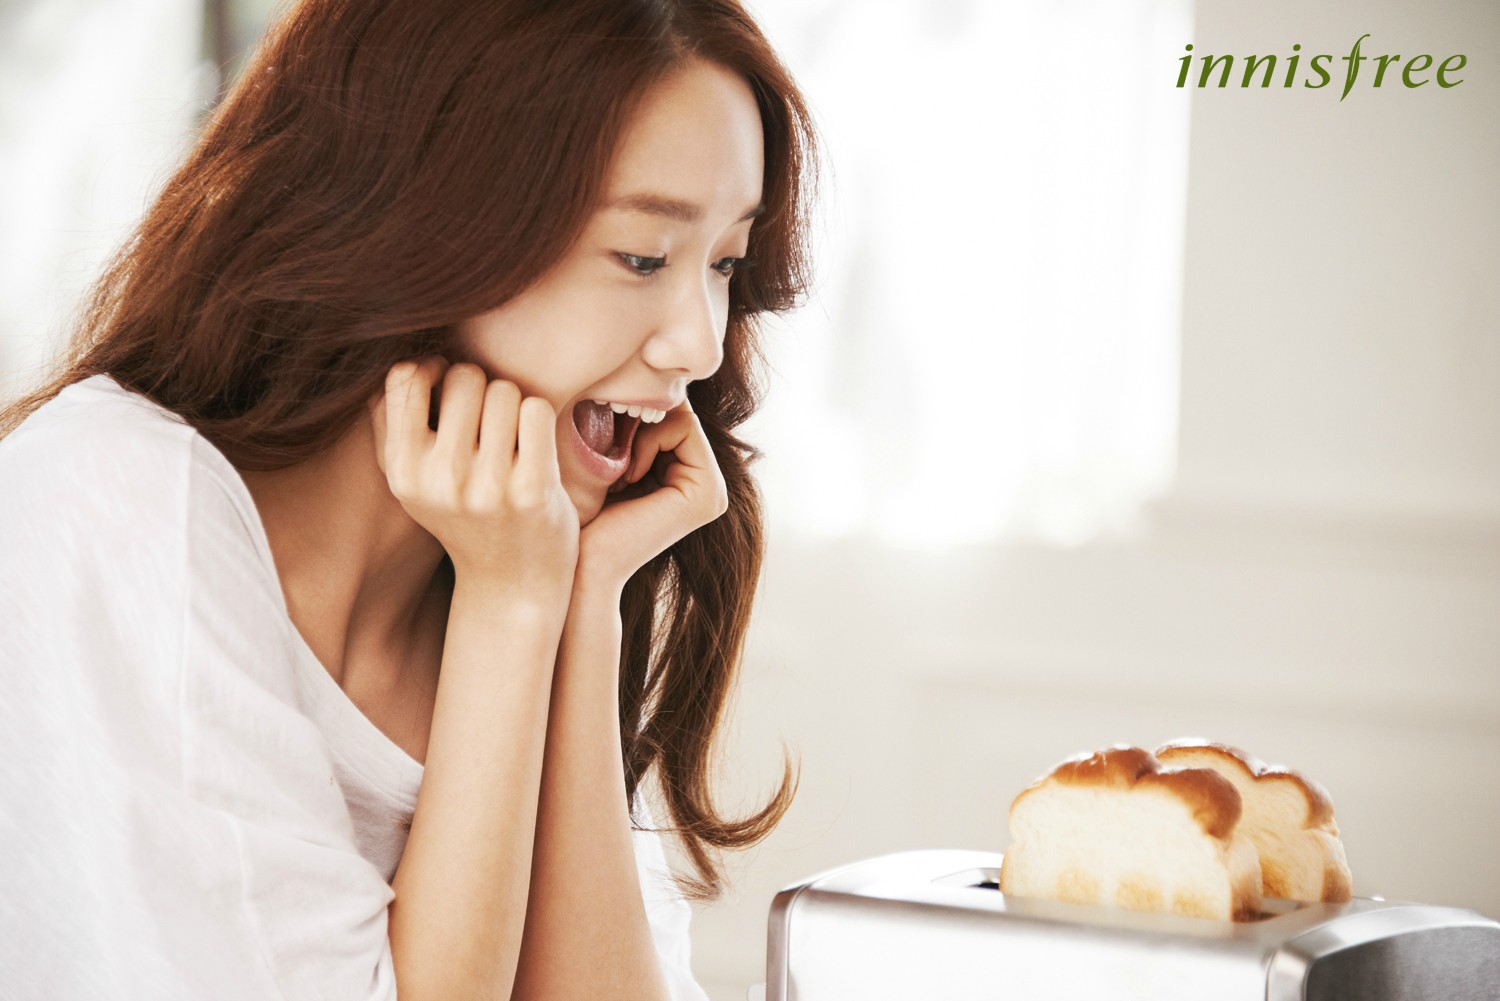 wallpaper hd 5 snsd yoona innisfree wallpaper hd 6 1500x1001